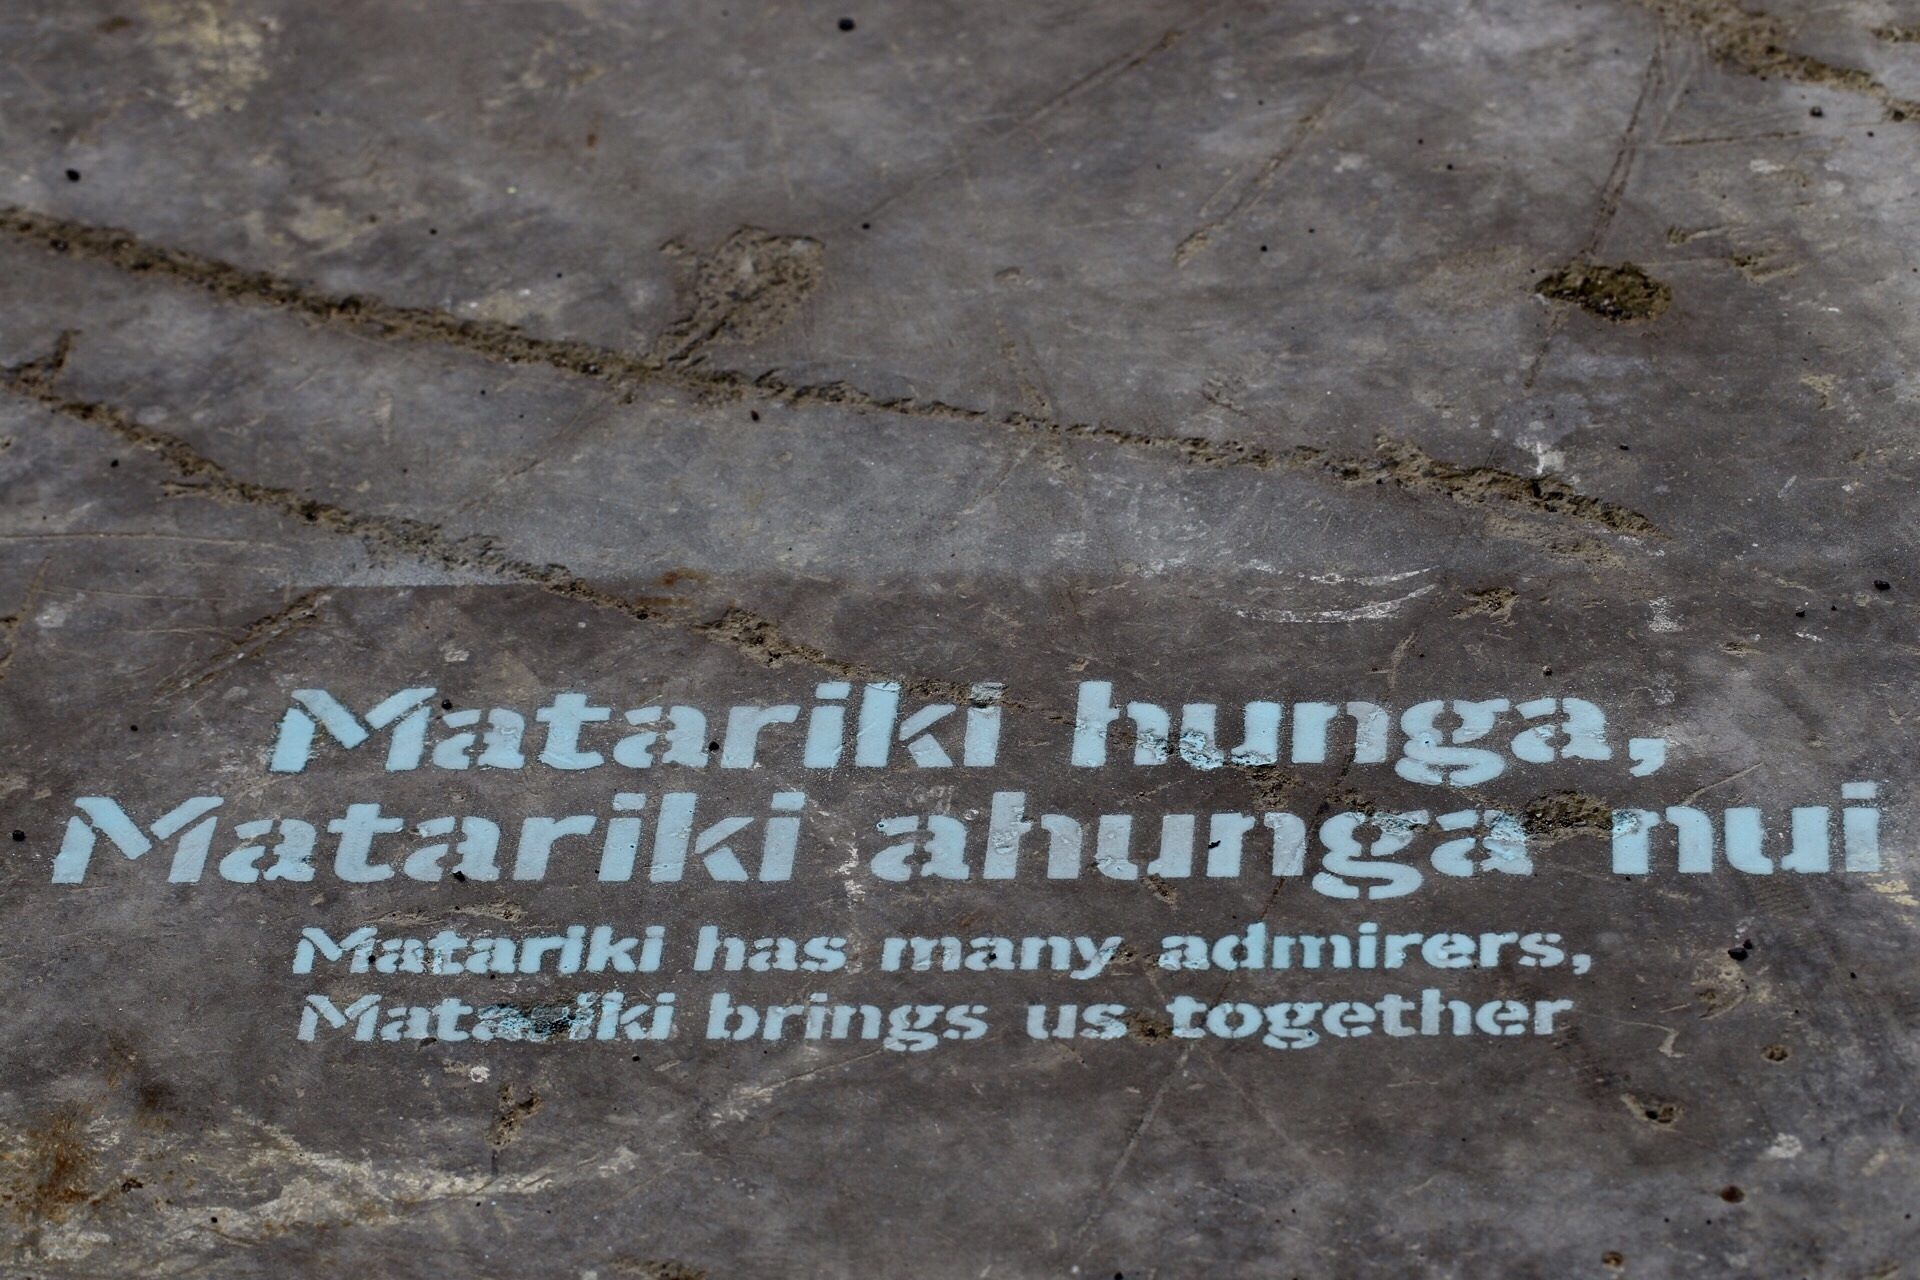 Whakatauki stencils for Matariki to share and acknowledge this time of year in the community.